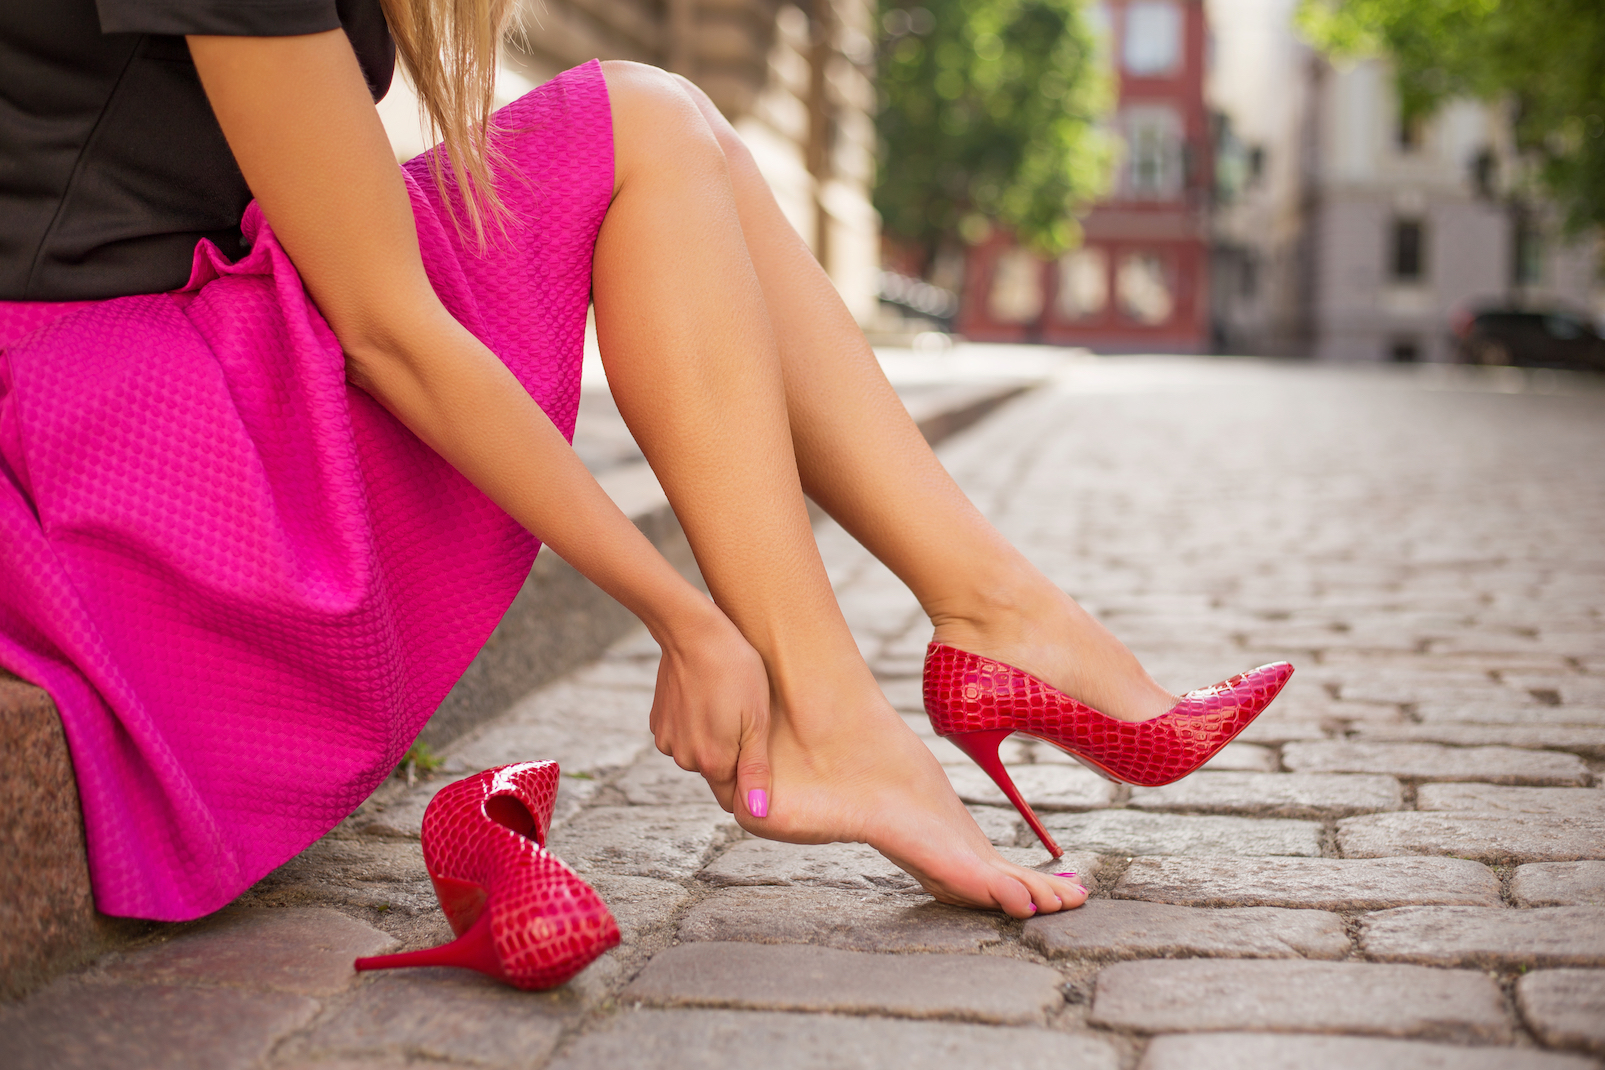 Both women and men prefer individuals who wear heels, and men are twice as likely to offer help to a woman who is wearing heels.